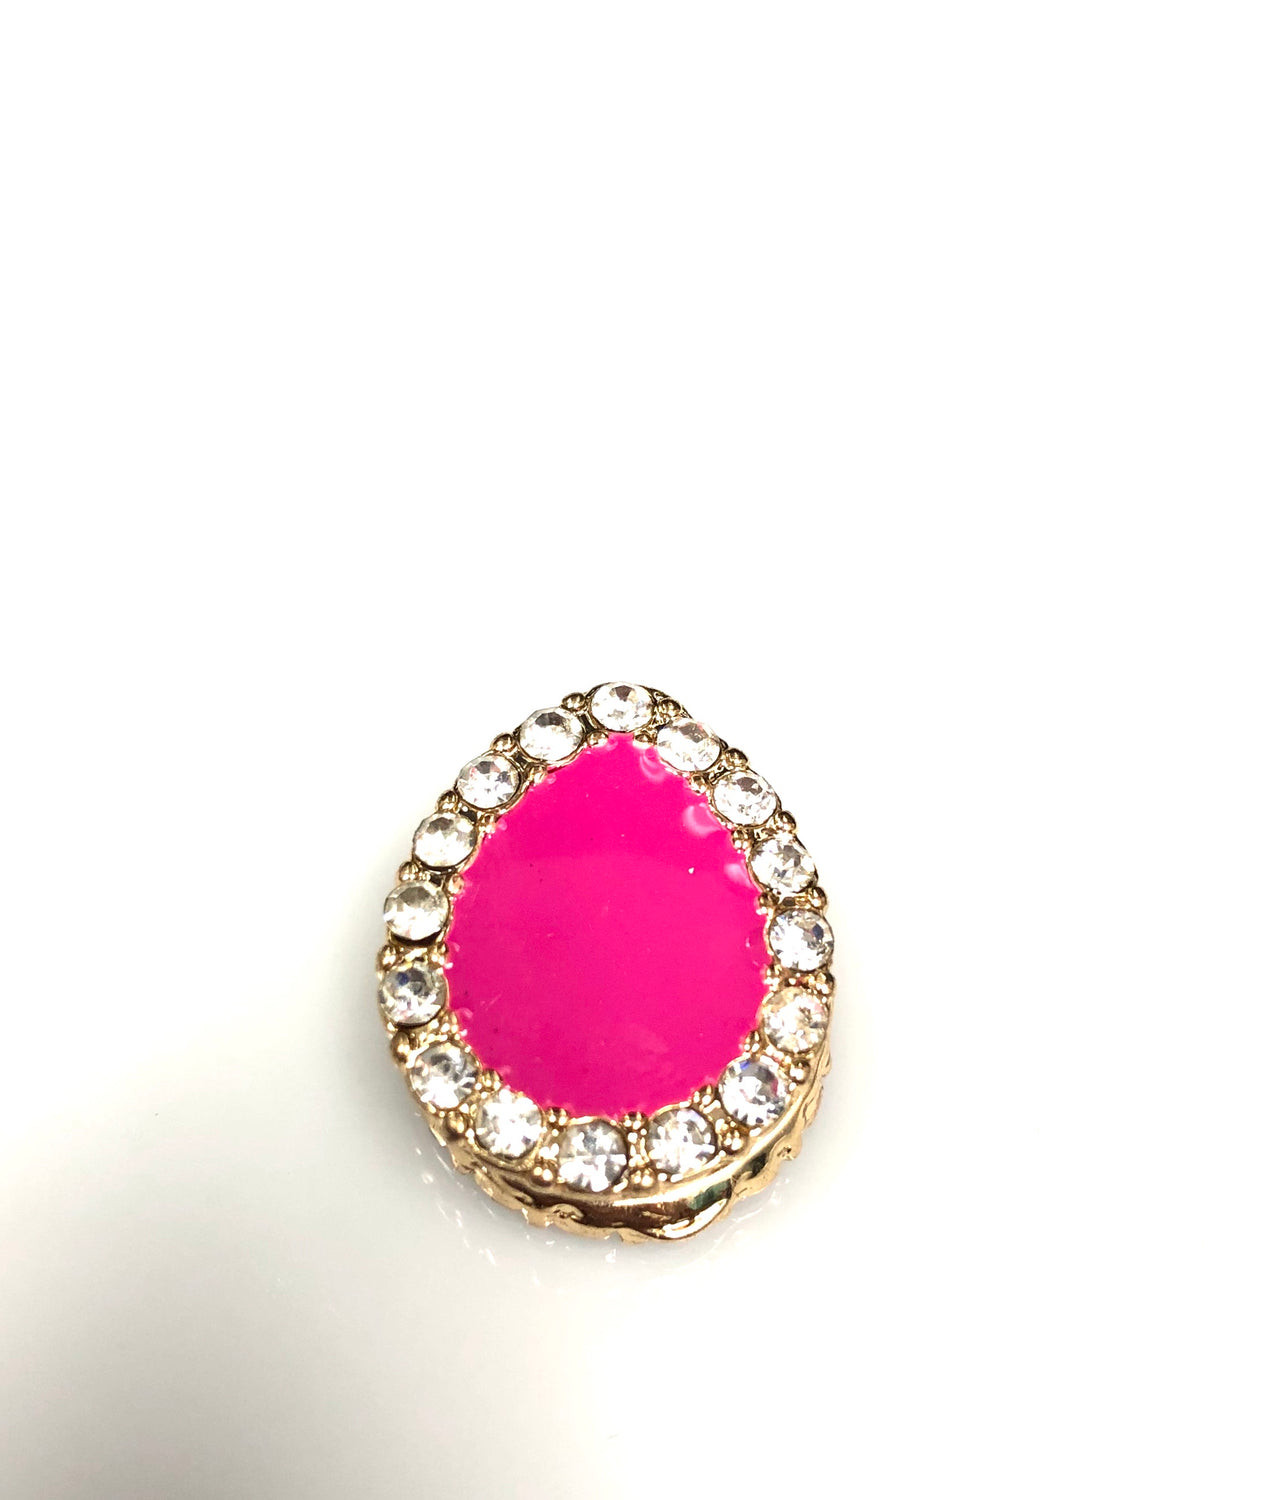 Pear Shaped Magnetic Pin - Hot Pink